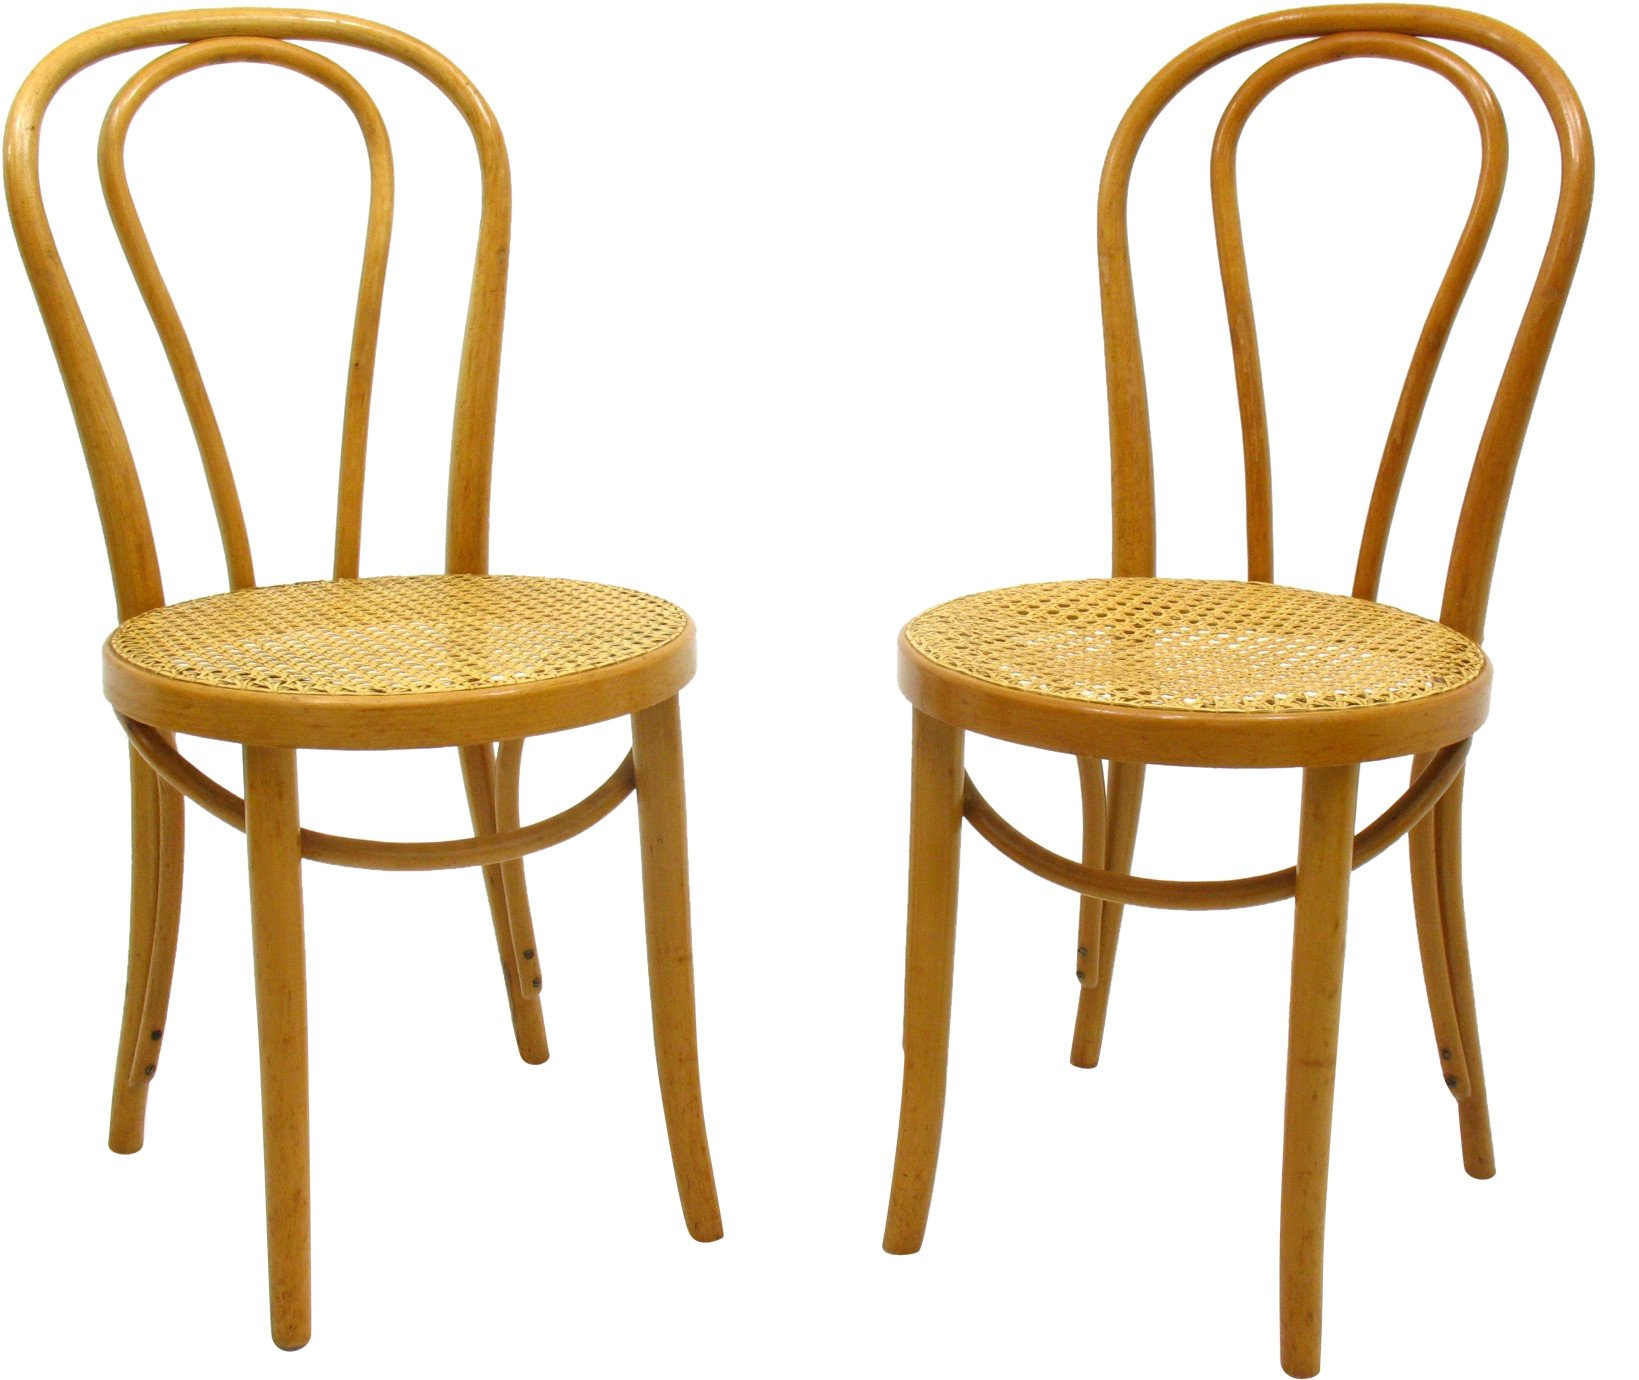 Pair of Chairs, 1970s